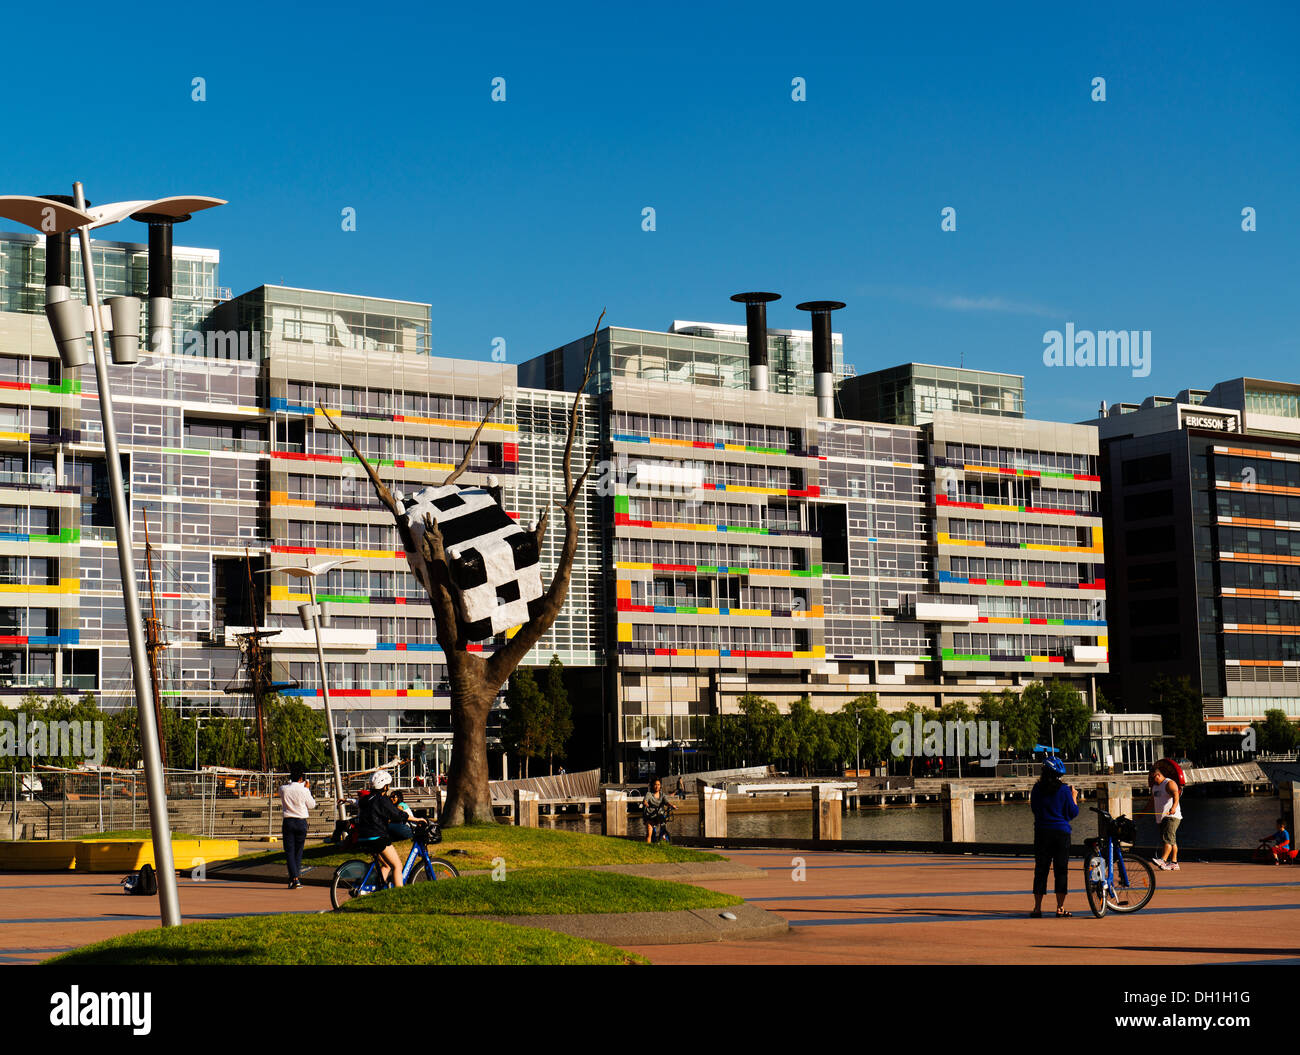 Public art and mixed use buildings at Melbourne's Docklands district. - Stock Image